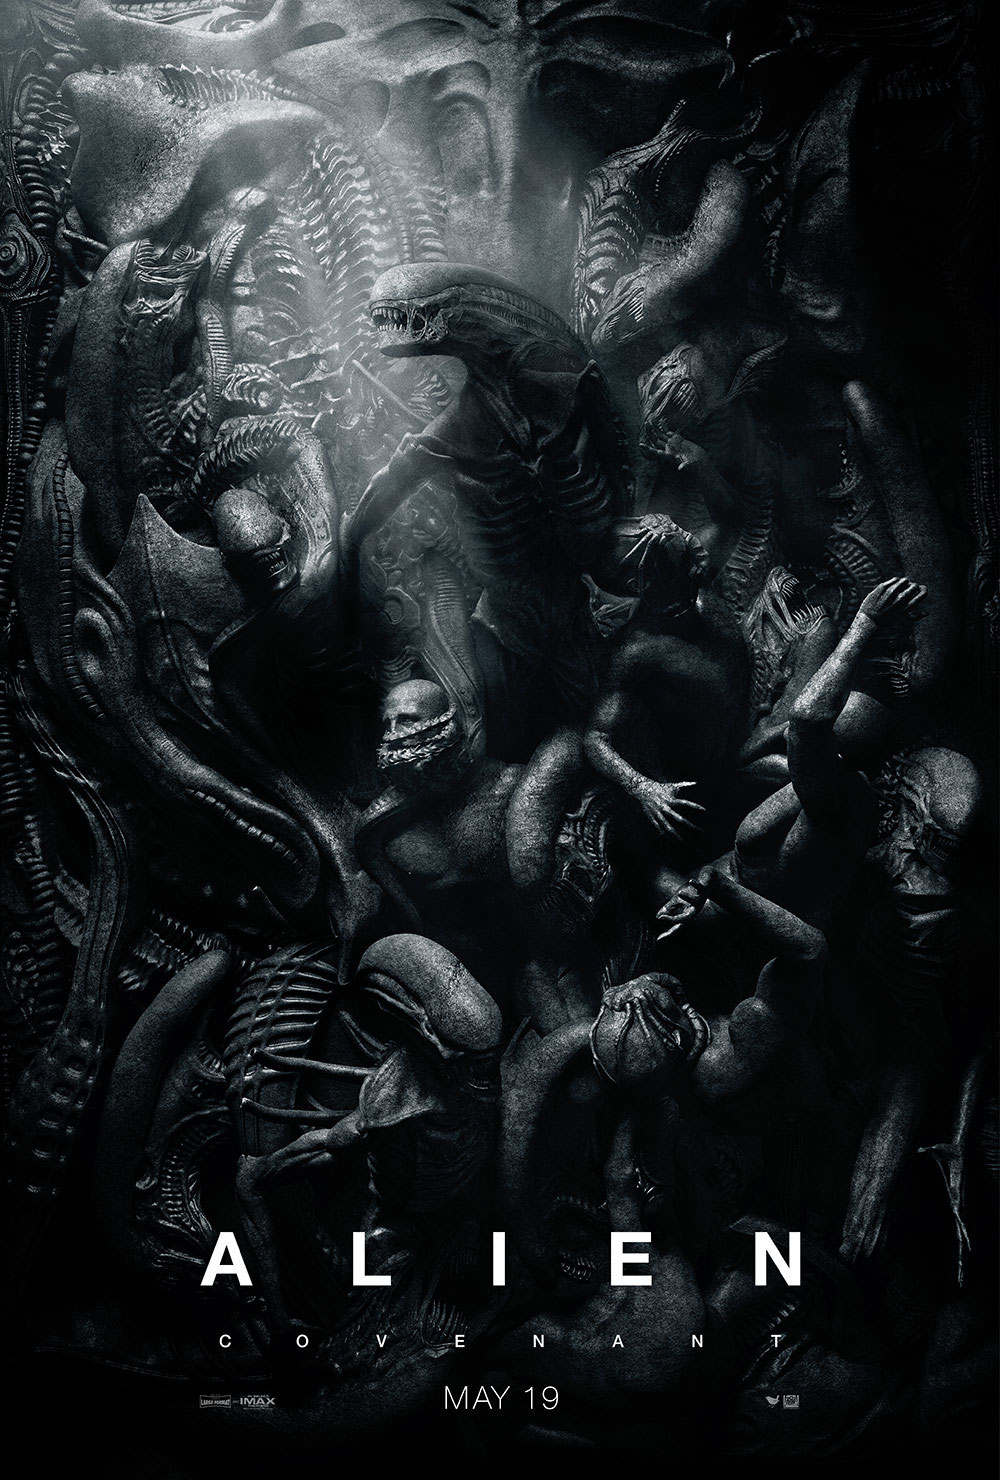 Image result for alien covenant official movie poster